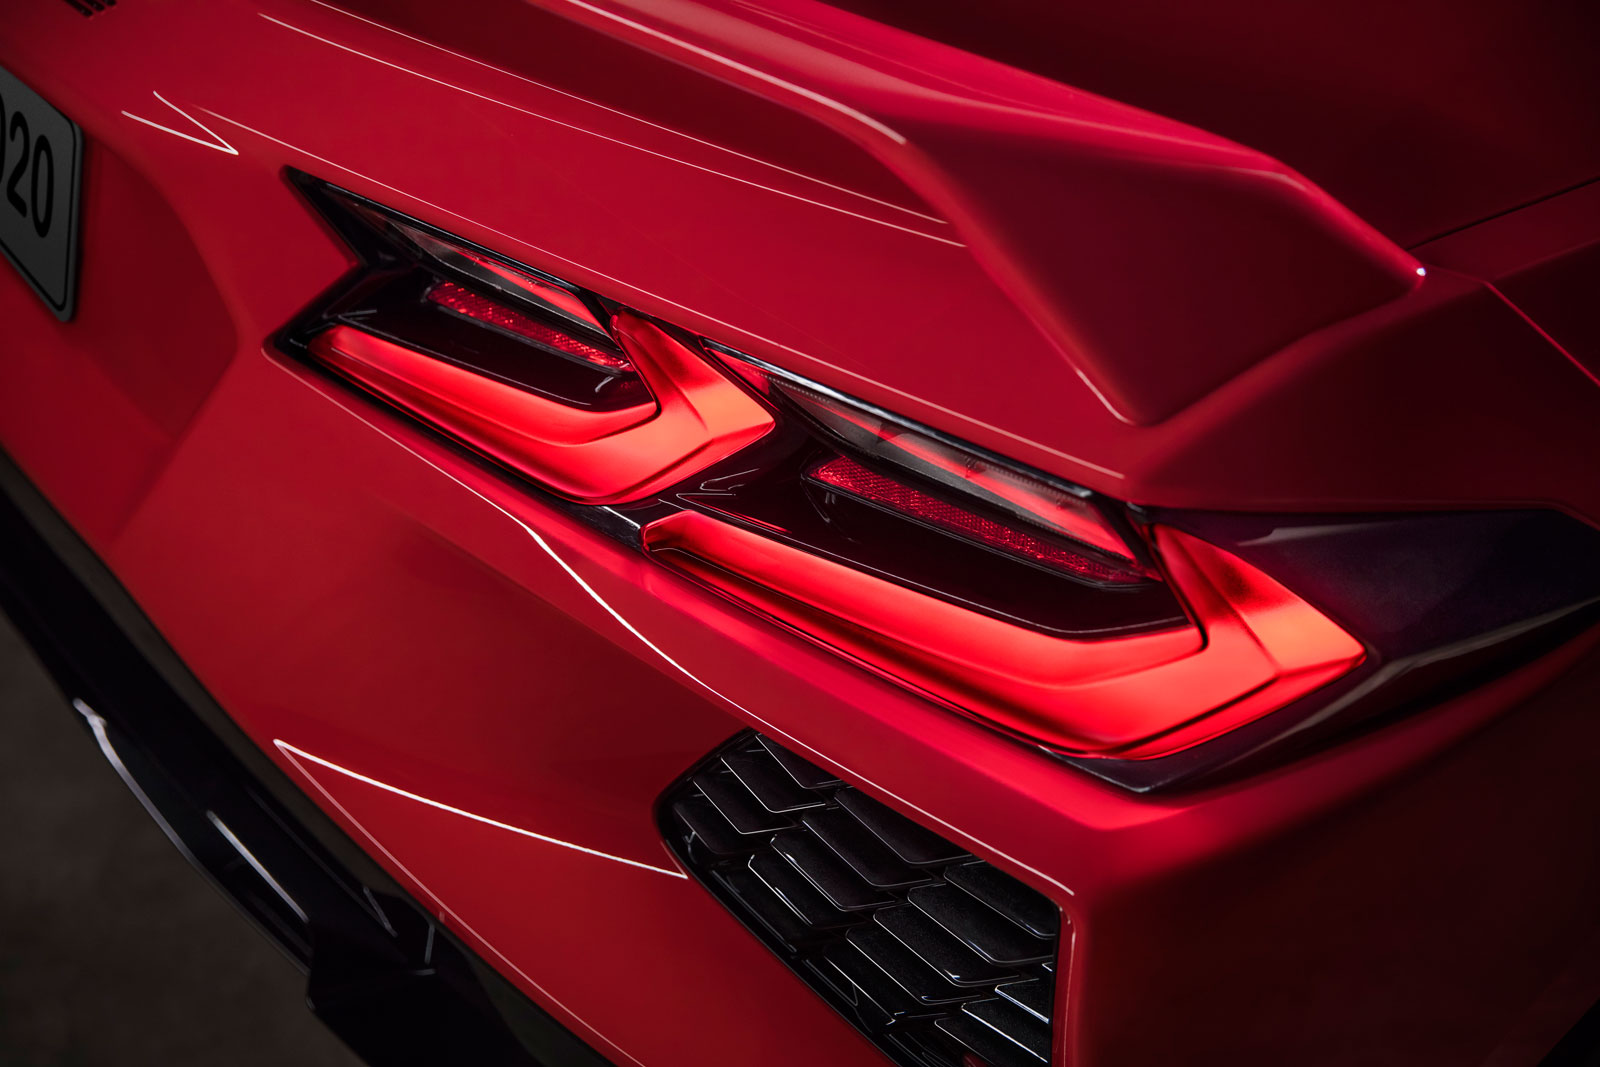 Chevrolet Corvette Stingray >> 2020 Chevrolet Corvette Stingray Tail Lights - Car Body Design